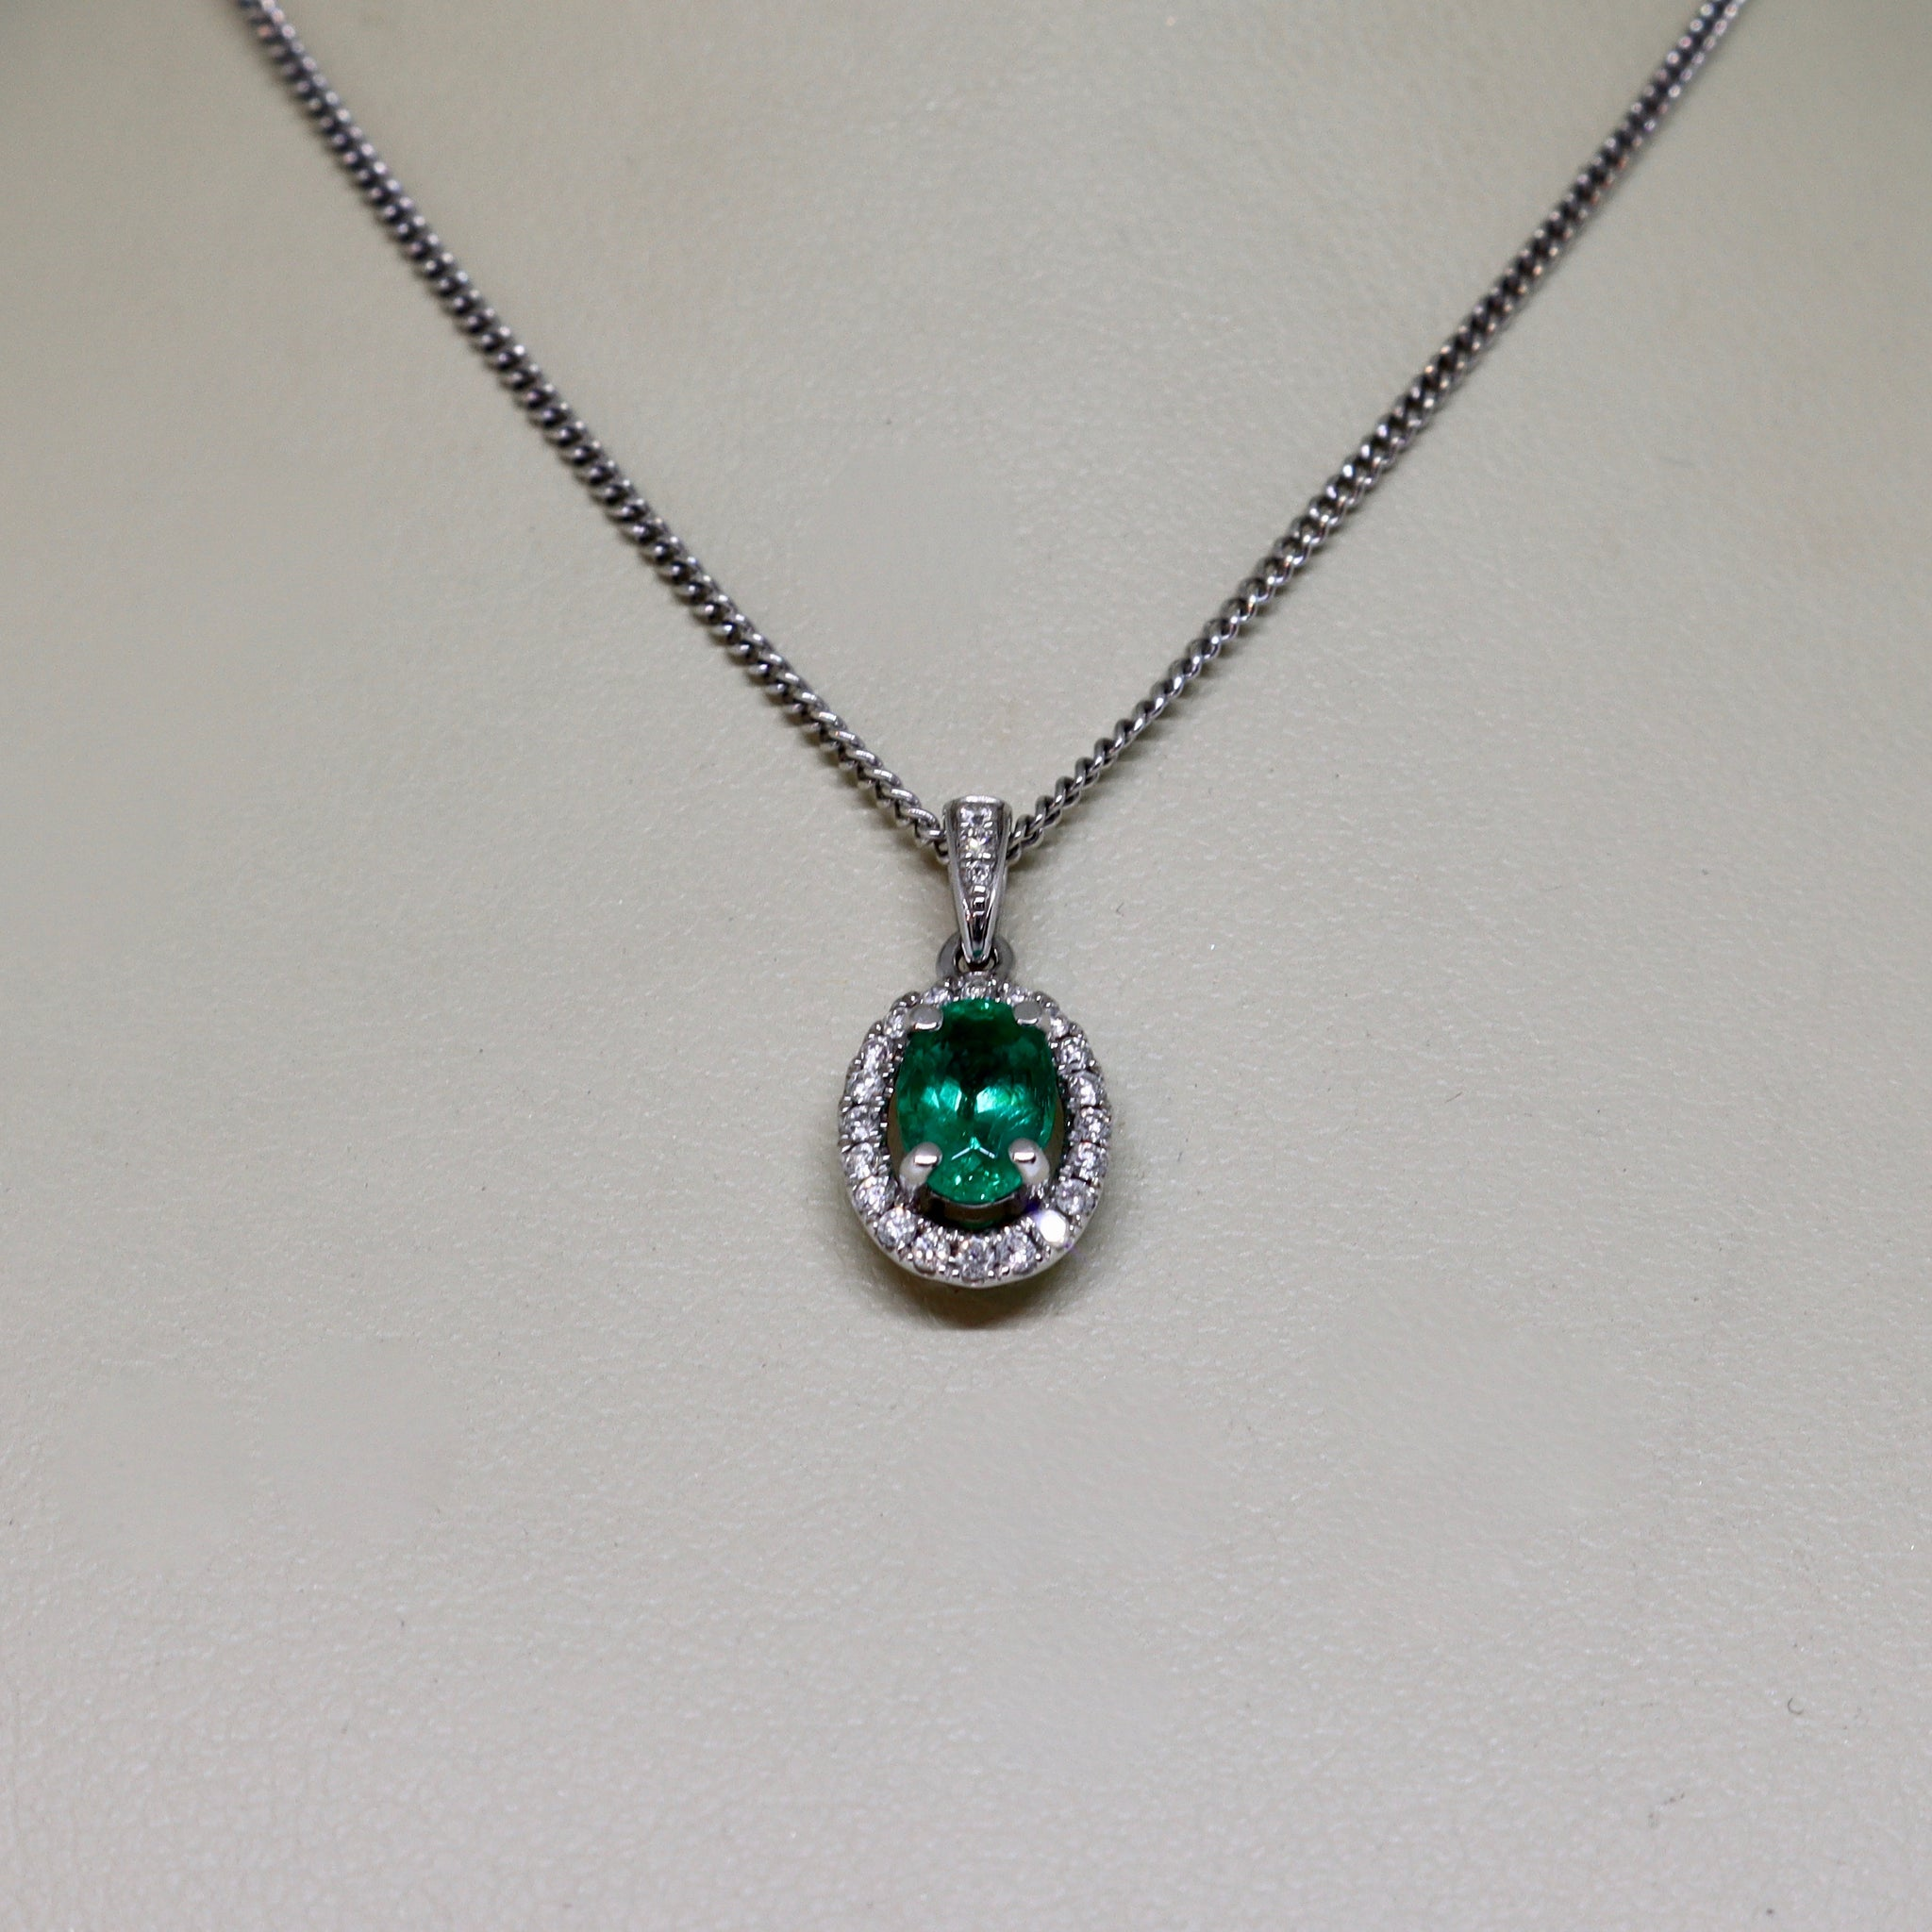 Emerald and diamond pendant necklace